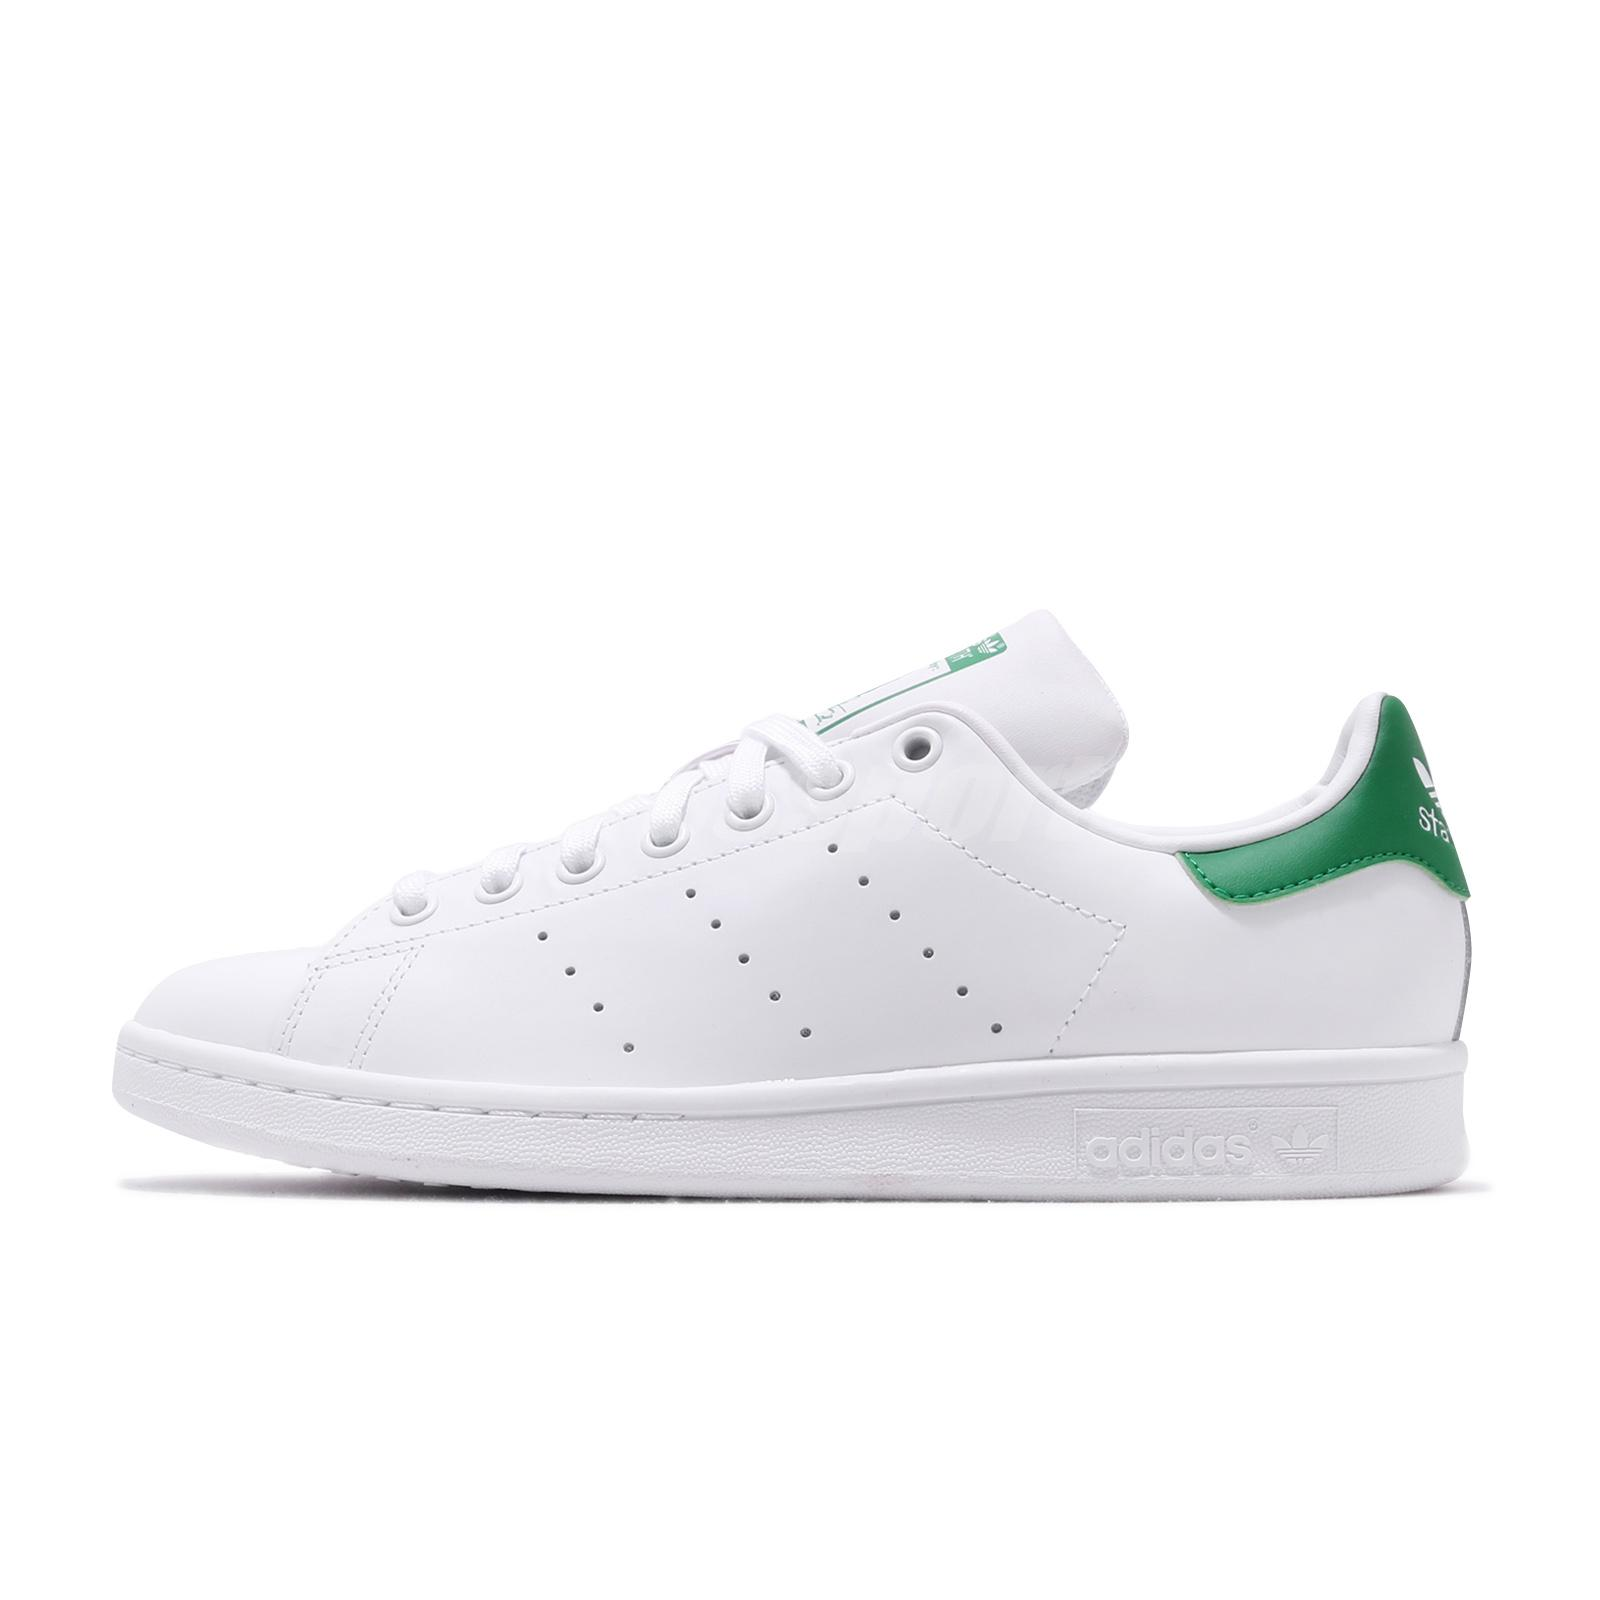 promo code 4be4a 5dc16 adidas Originals Stan Smith White Green Men Classic Casual Shoes Sneakers  M20324